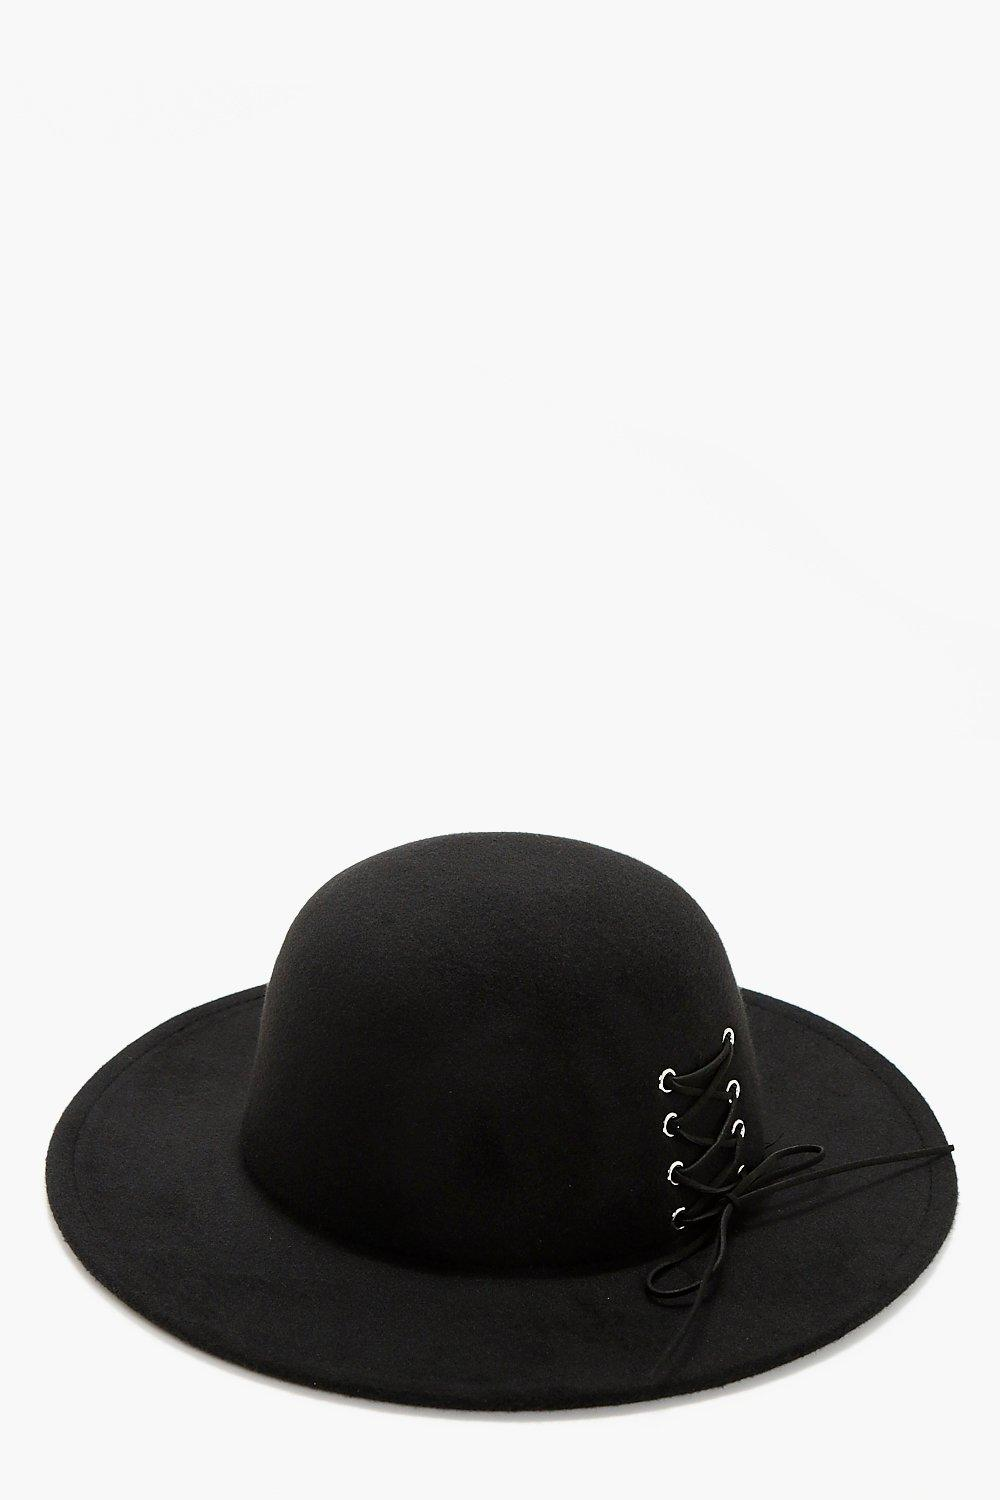 Lace Up Corset Floppy Hat - black - Erin Lace Up C